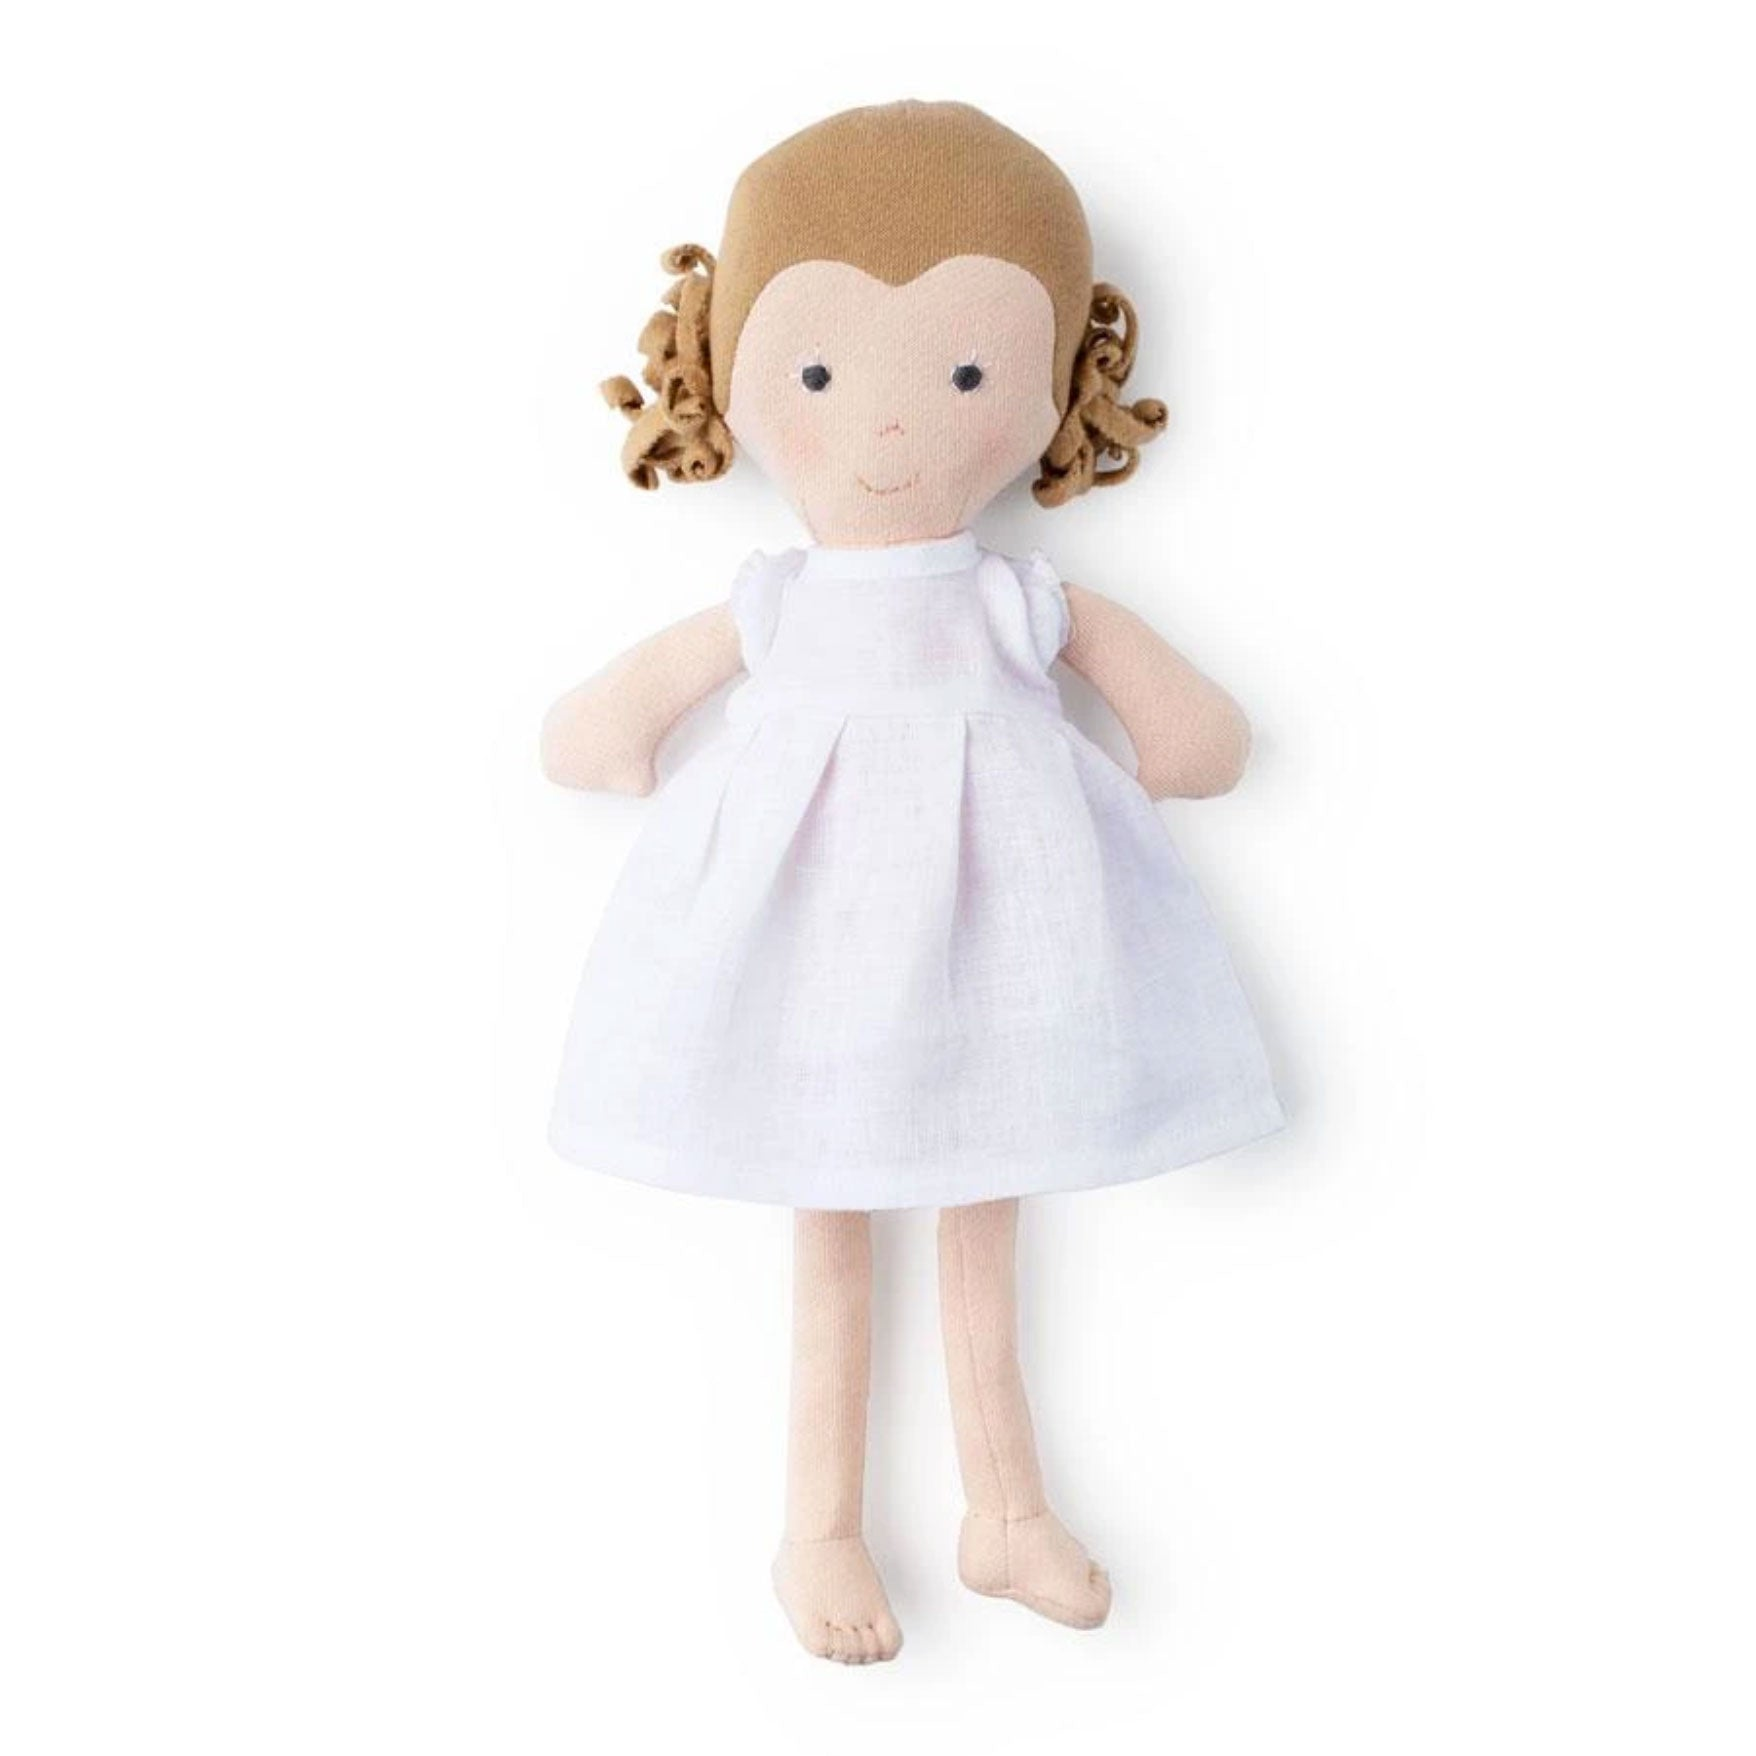 Hazel Village Fern soft doll at Bonjour Baby Baskets, luxury baby gifts